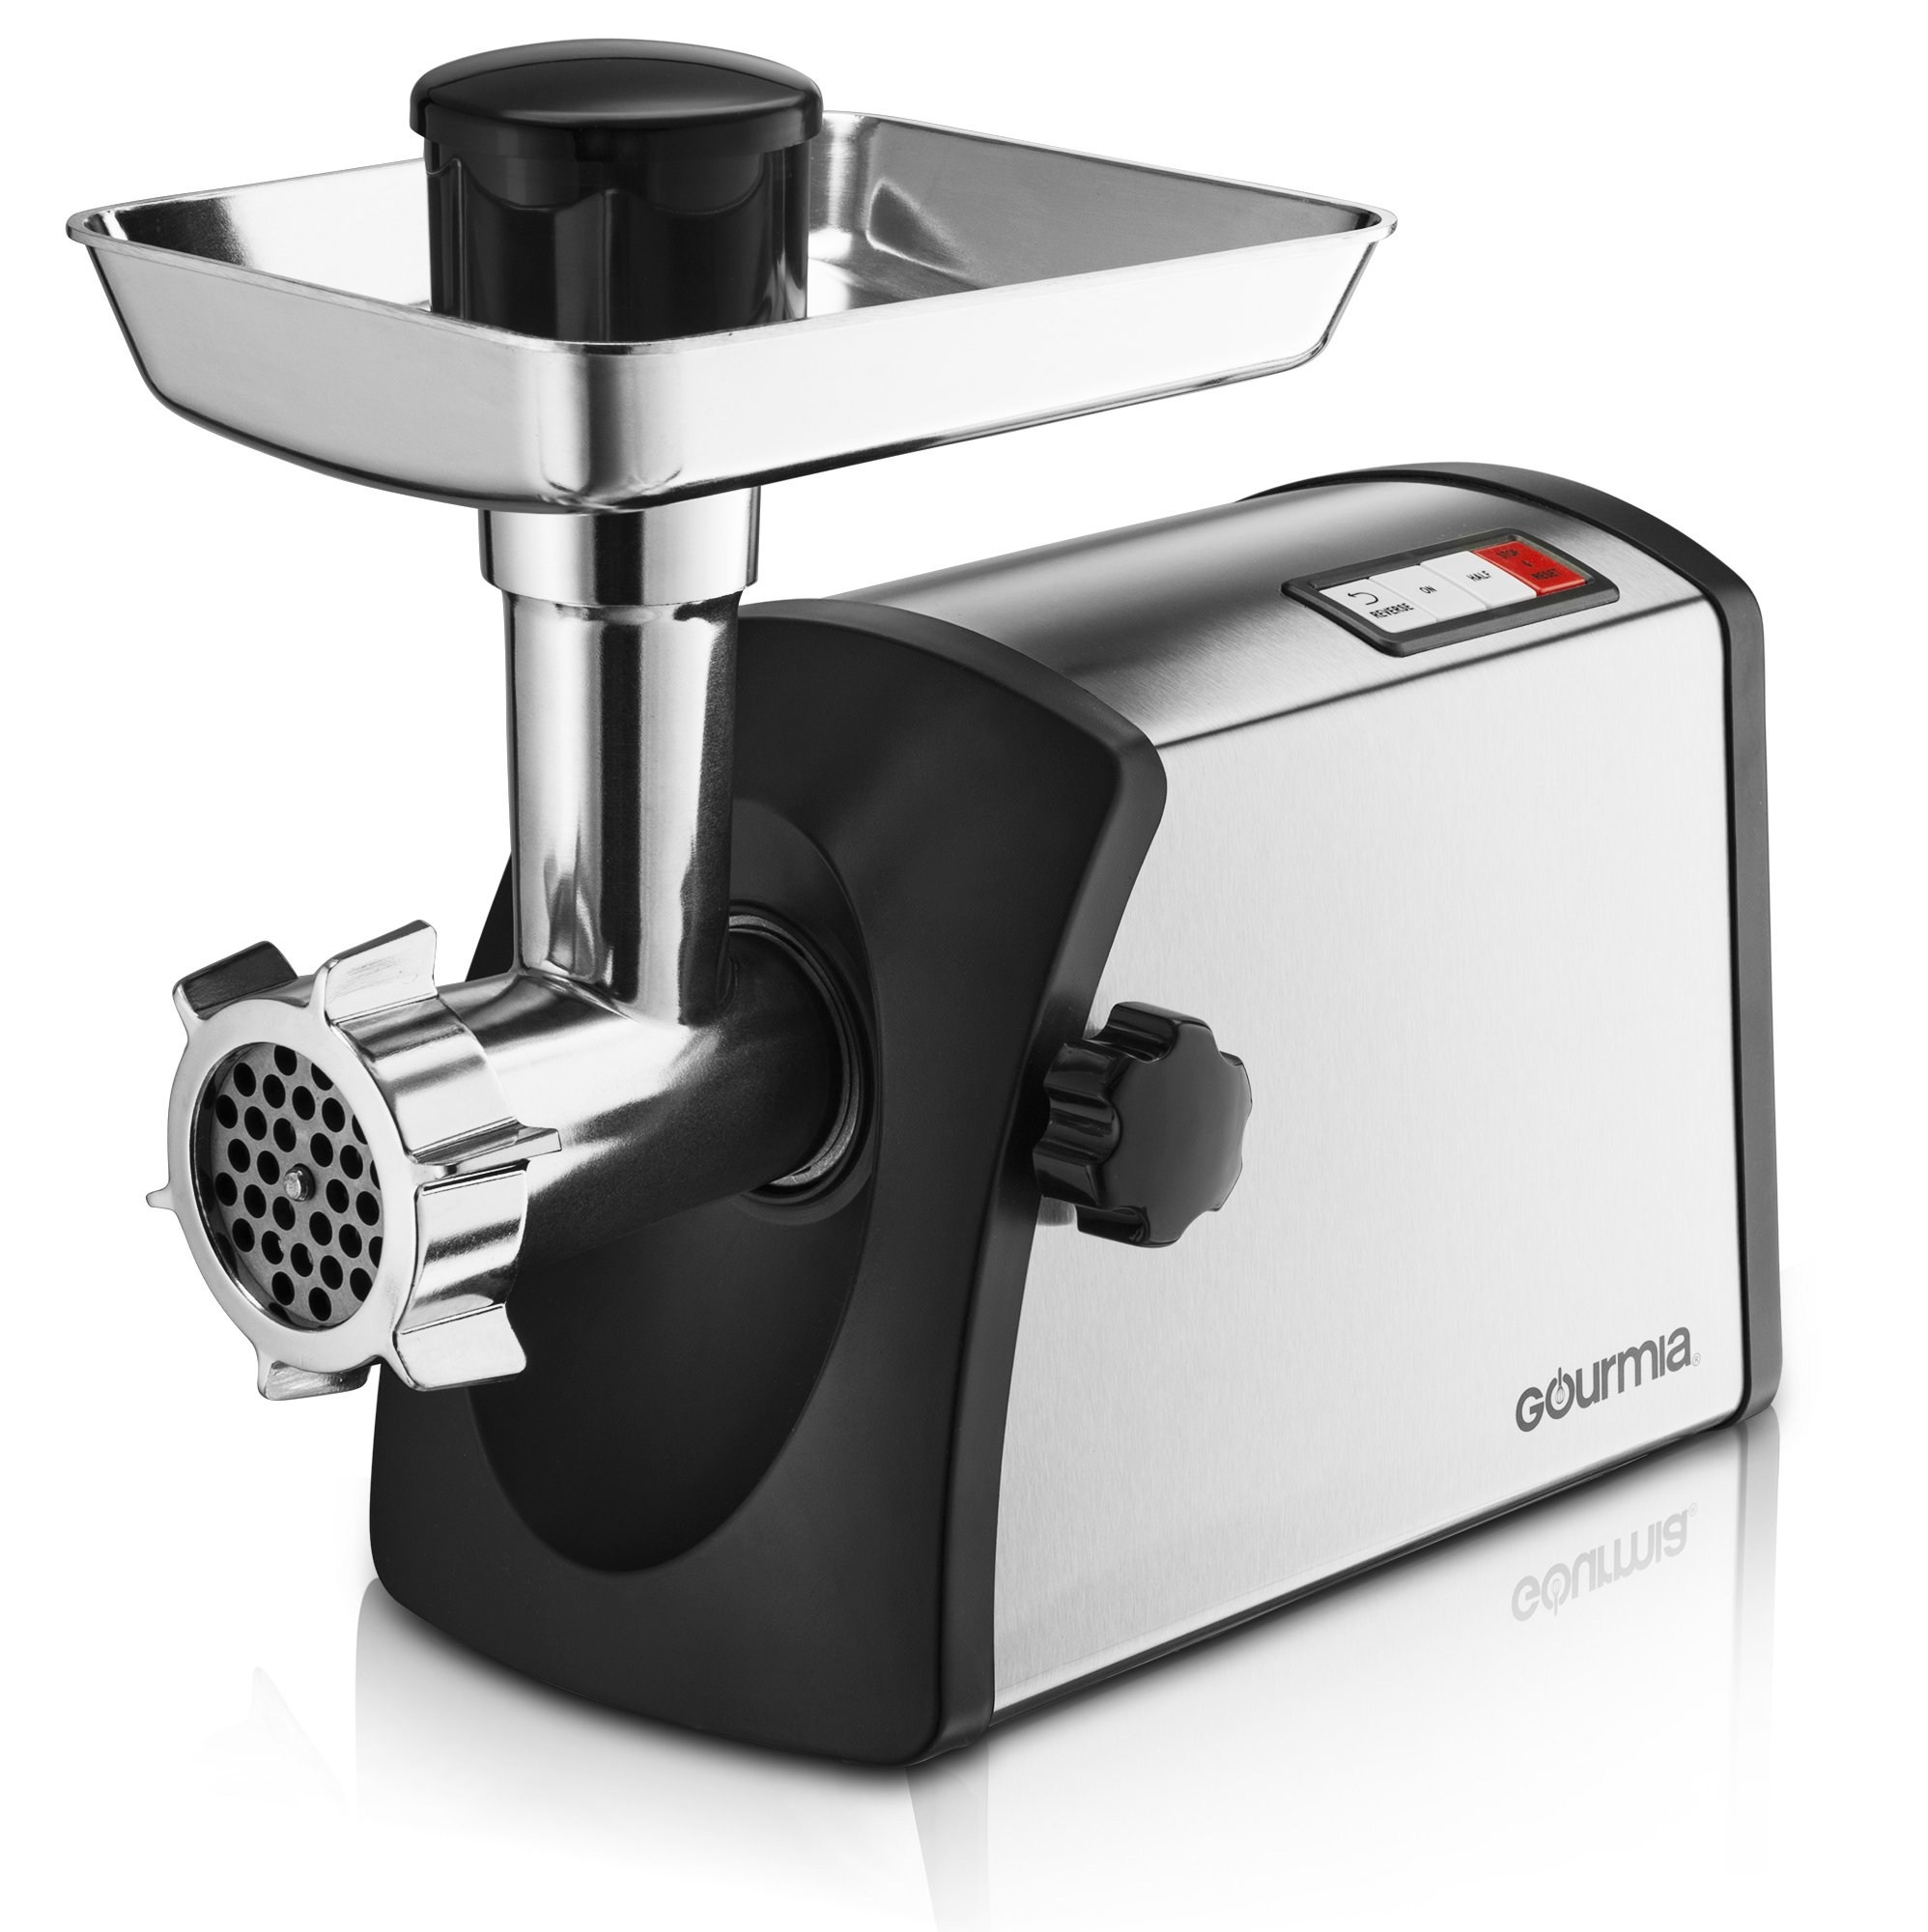 Gourmia GMG7500 Prime Plus Stainless Steel Electric Meat Grinder Different Grinding Plates, Sausage Funnels And Kibbeh Attachment Recipe Book Included 800 Watts ETL Approved 2200 Watts Max. - 110V by Gourmia (Image #1)